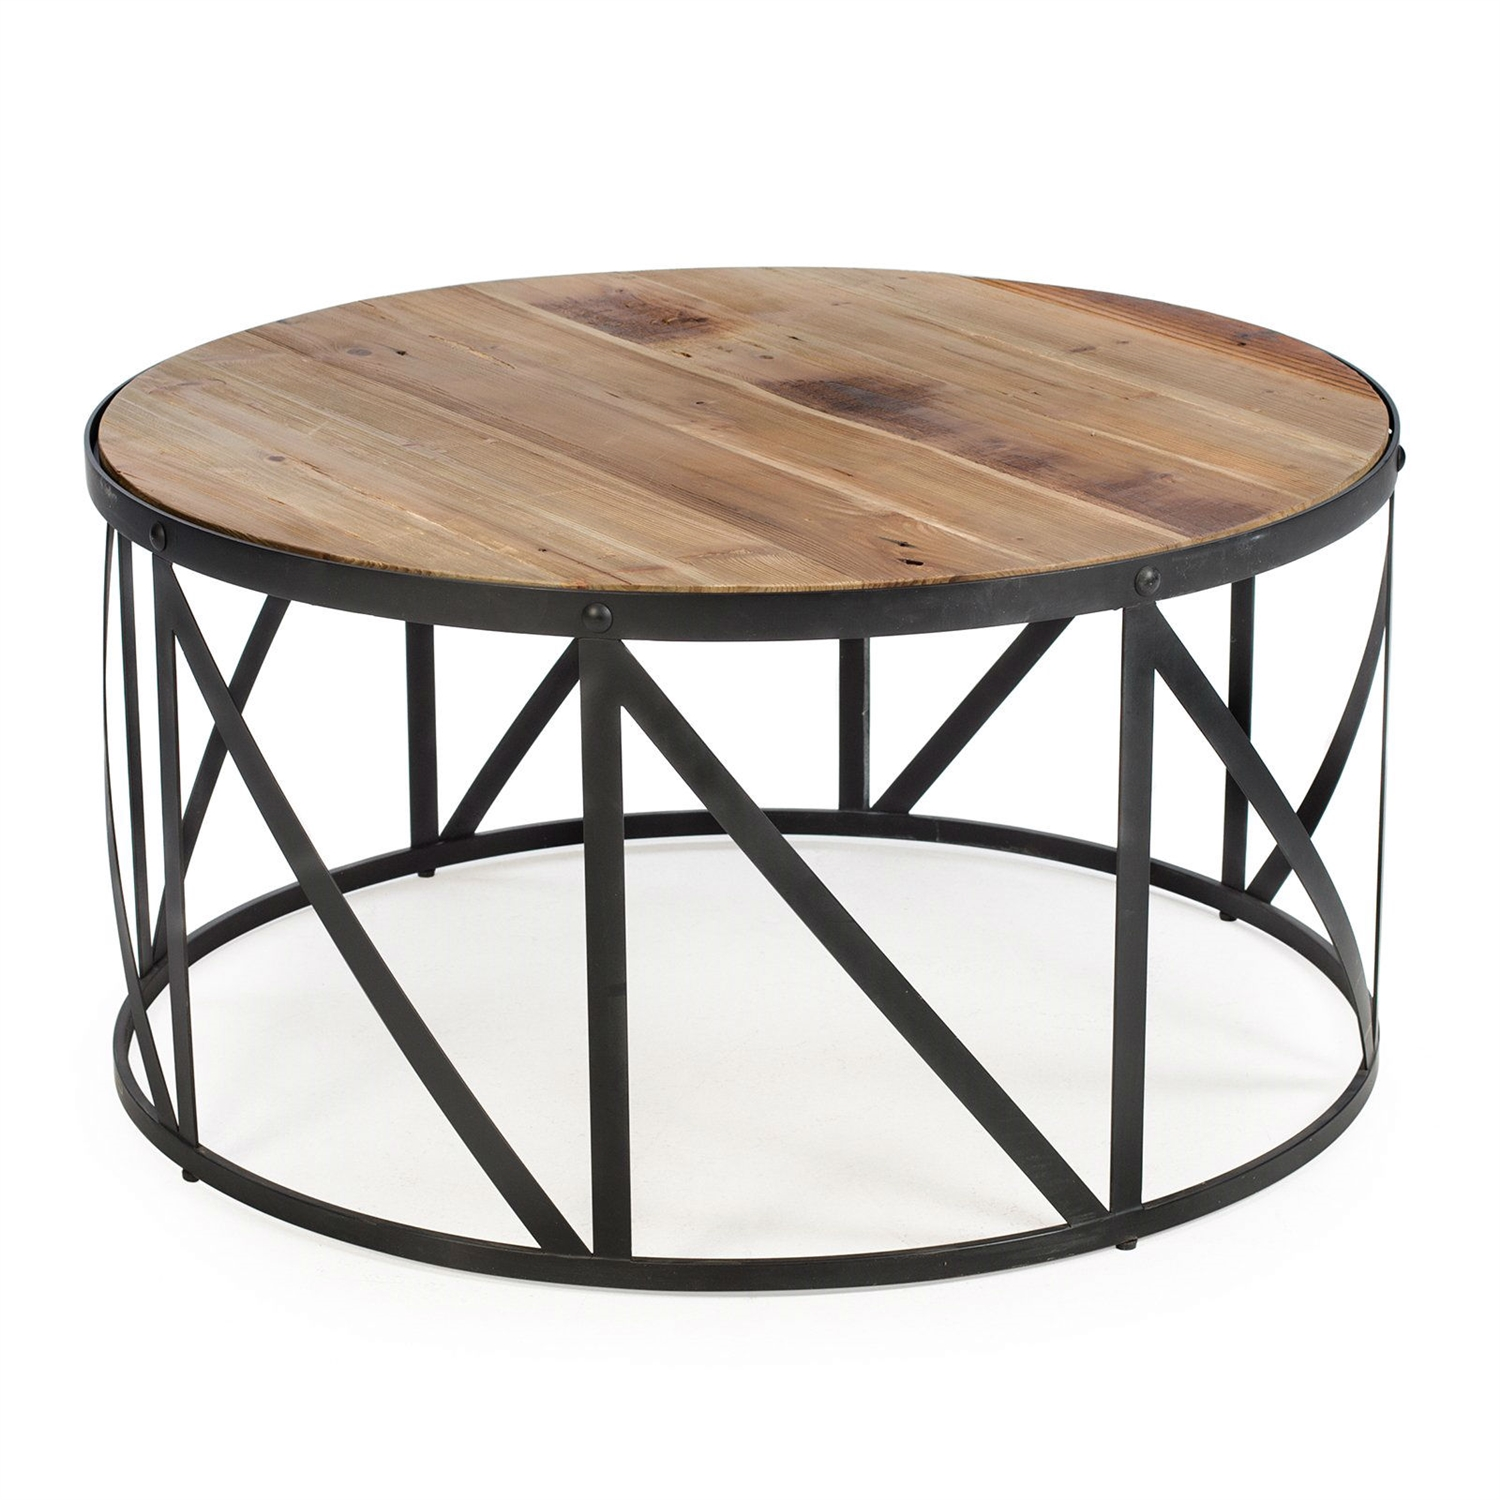 - Round Metal And Wood Drum Shaped Coffee Table FastFurnishings.com